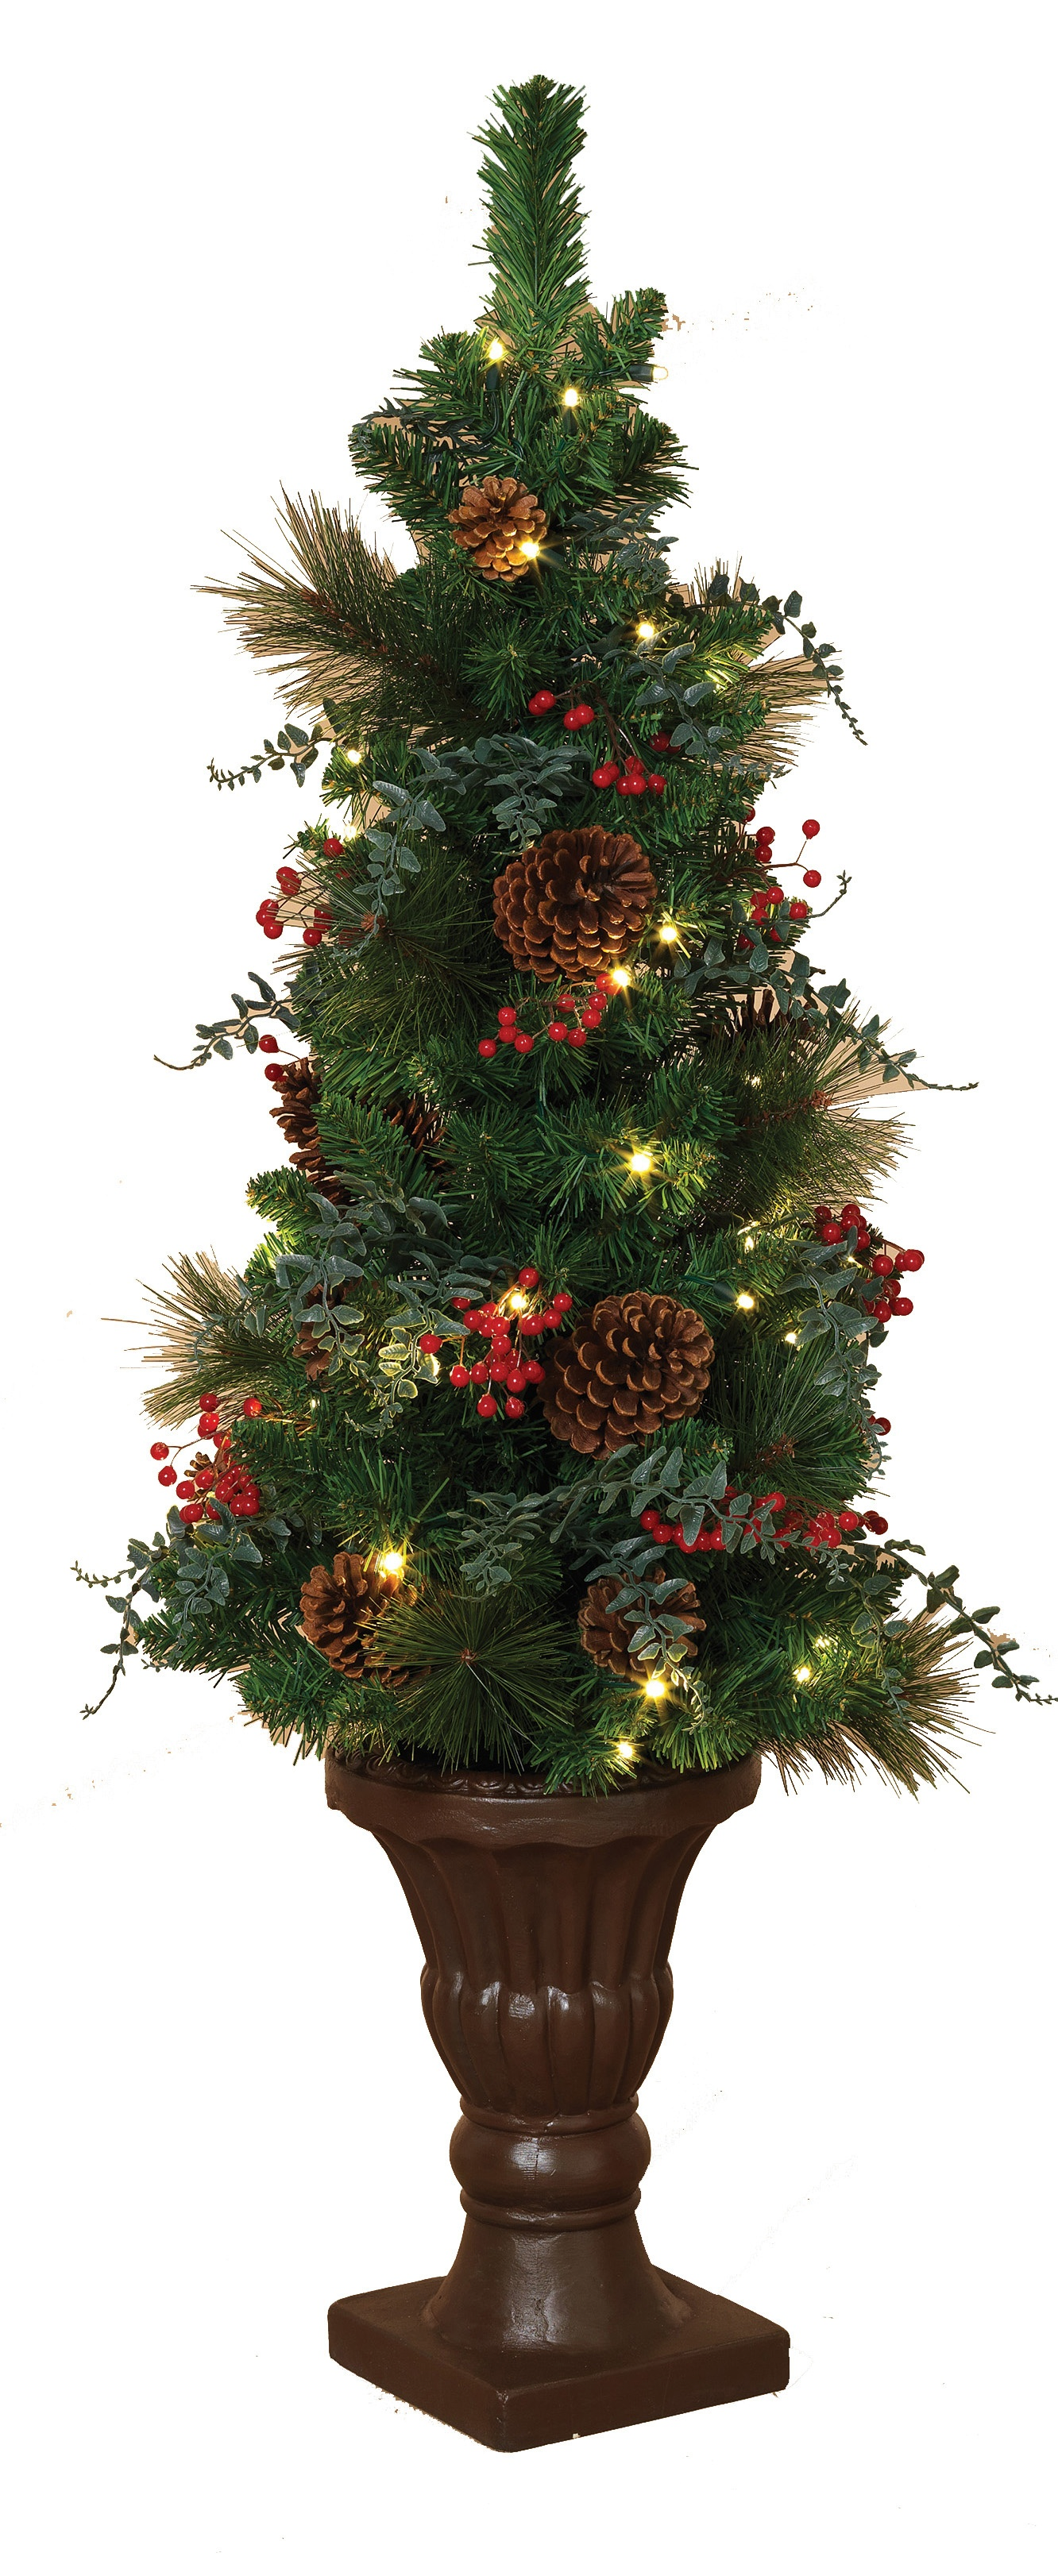 Led Shop Lights >> Artificial Christmas Trees - 4' Battery Operated Prelit Potted Tree with LED Clear Lights